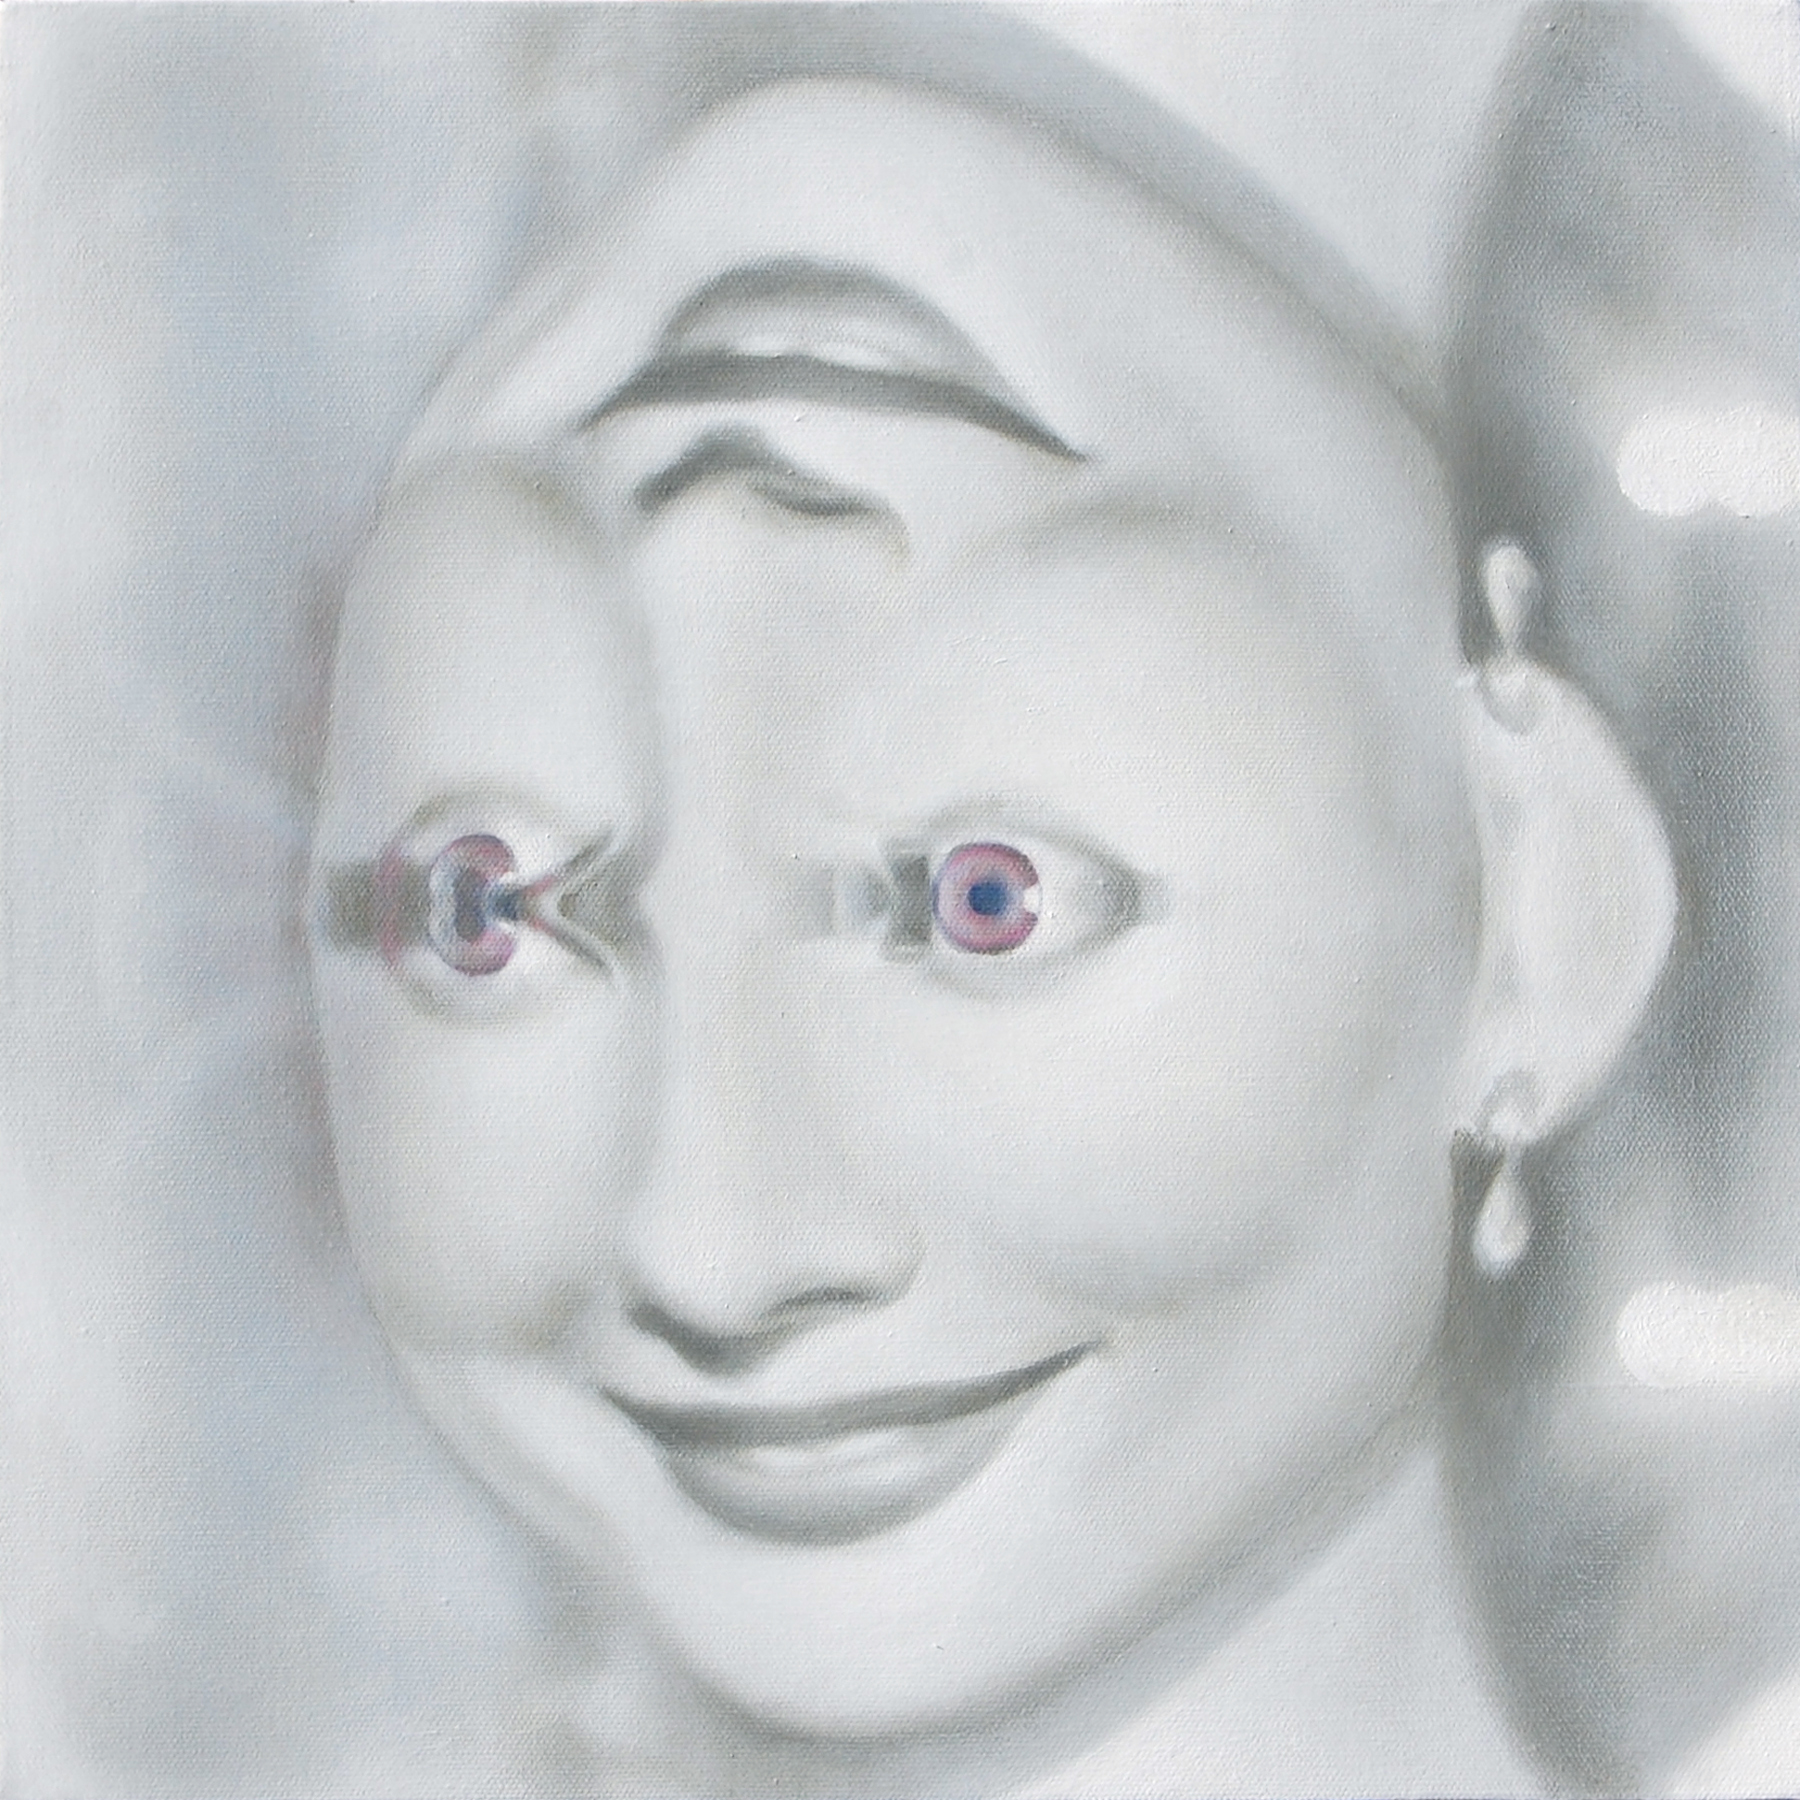 2012 The eyes of beauty(davy's grey) 455×455㎜